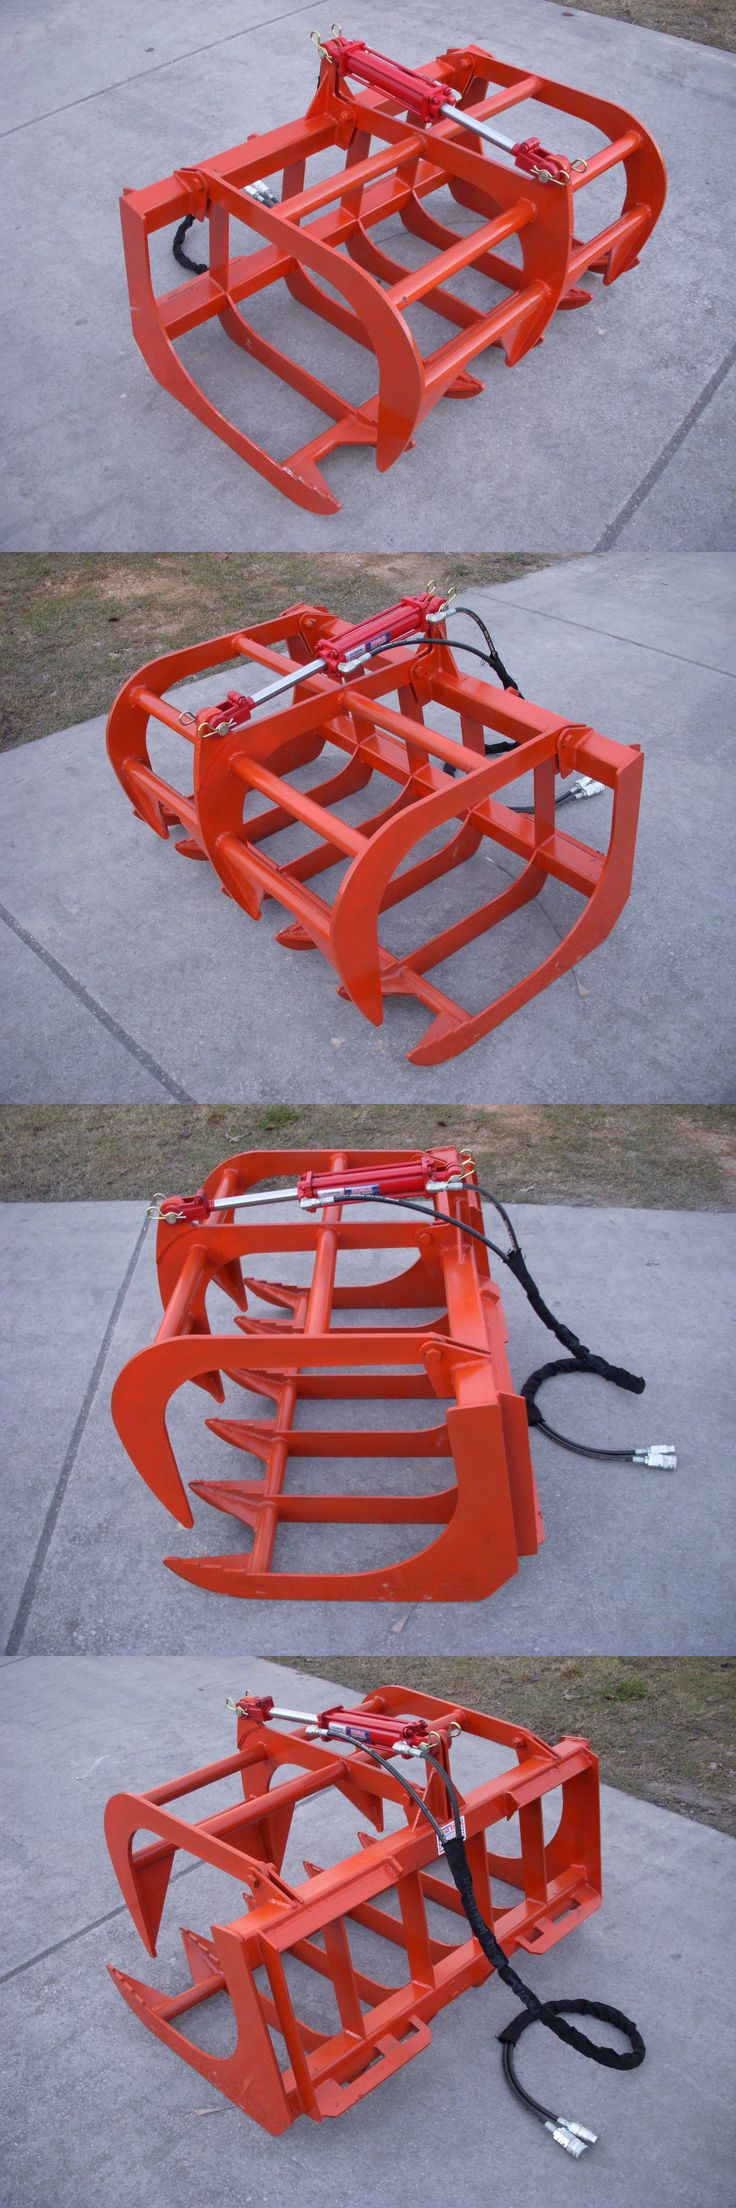 heavy equipment: Kubota Compact Tractor Attachment - 48 Root Rake Grapple Bucket - Free Shipping BUY IT NOW ONLY: $895.0